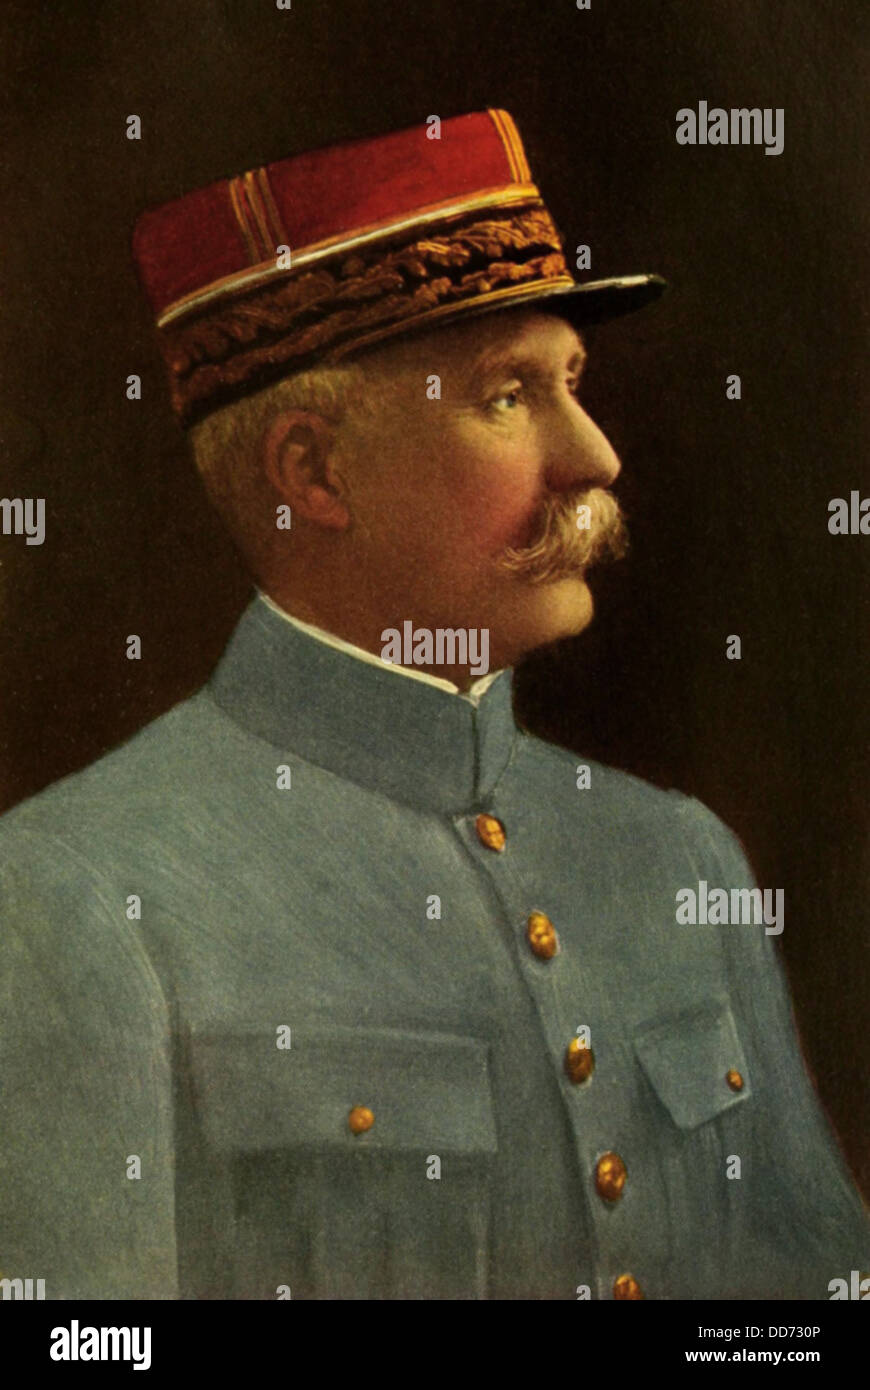 General Henri-Philippe Petain, French World War 1 hero who collaborated with the Nazi conquerors of France in World - Stock Image